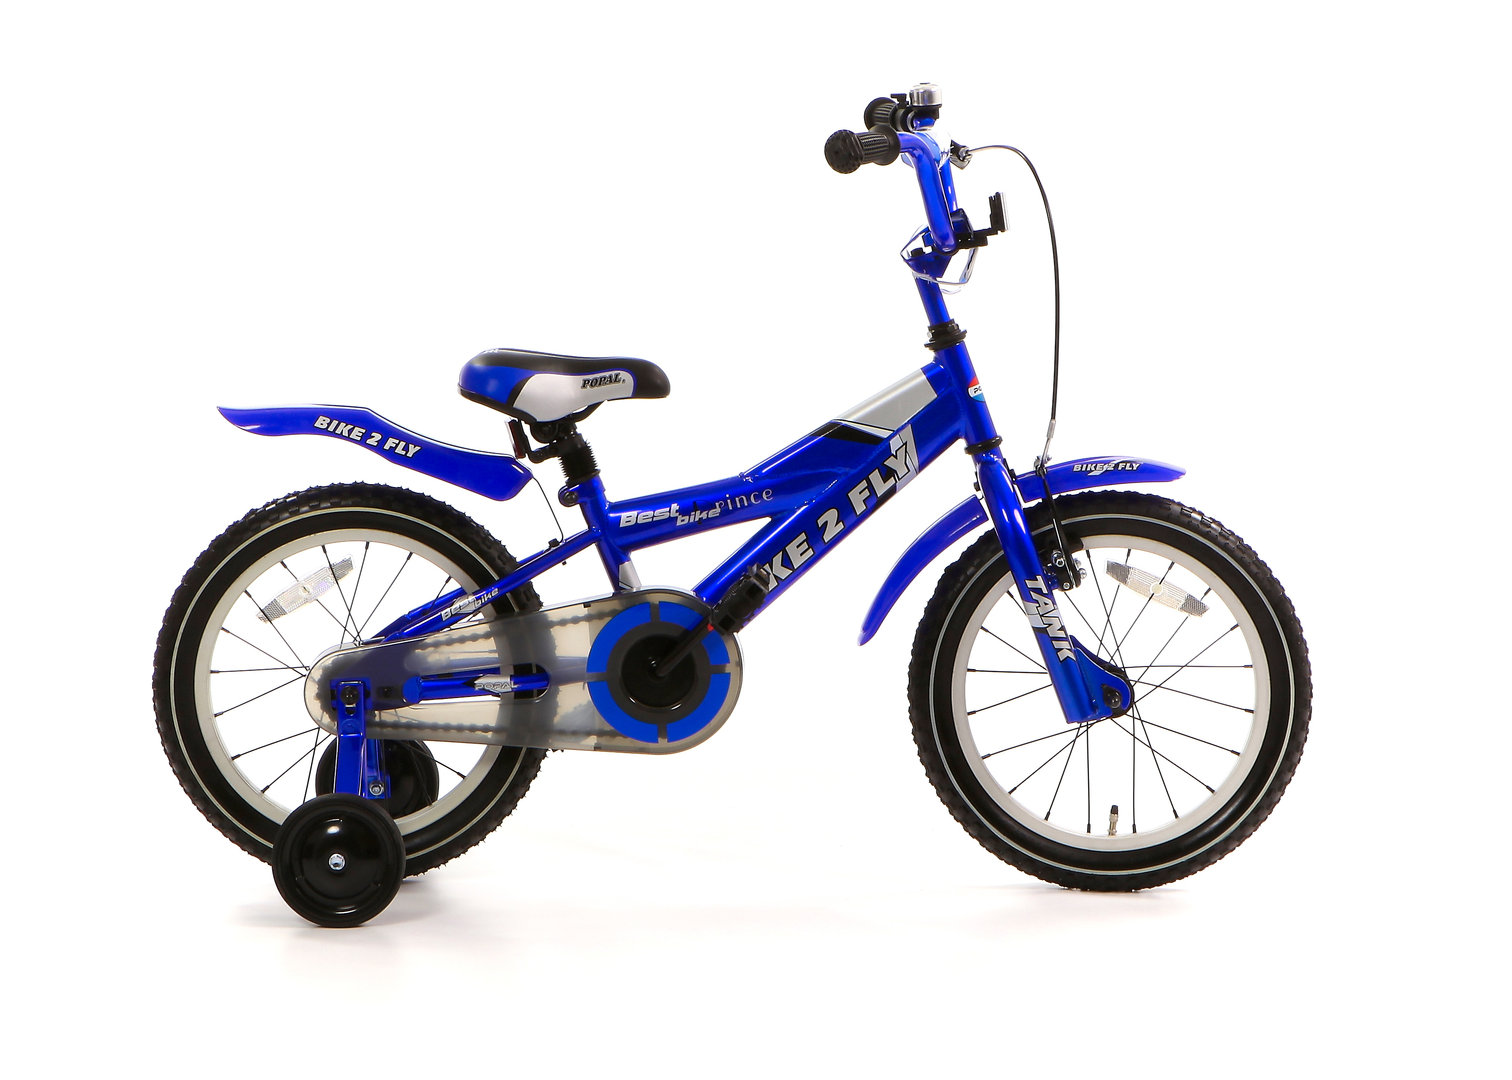 16 zoll kinderfahrrad bike 2 fly blau fahrrad. Black Bedroom Furniture Sets. Home Design Ideas